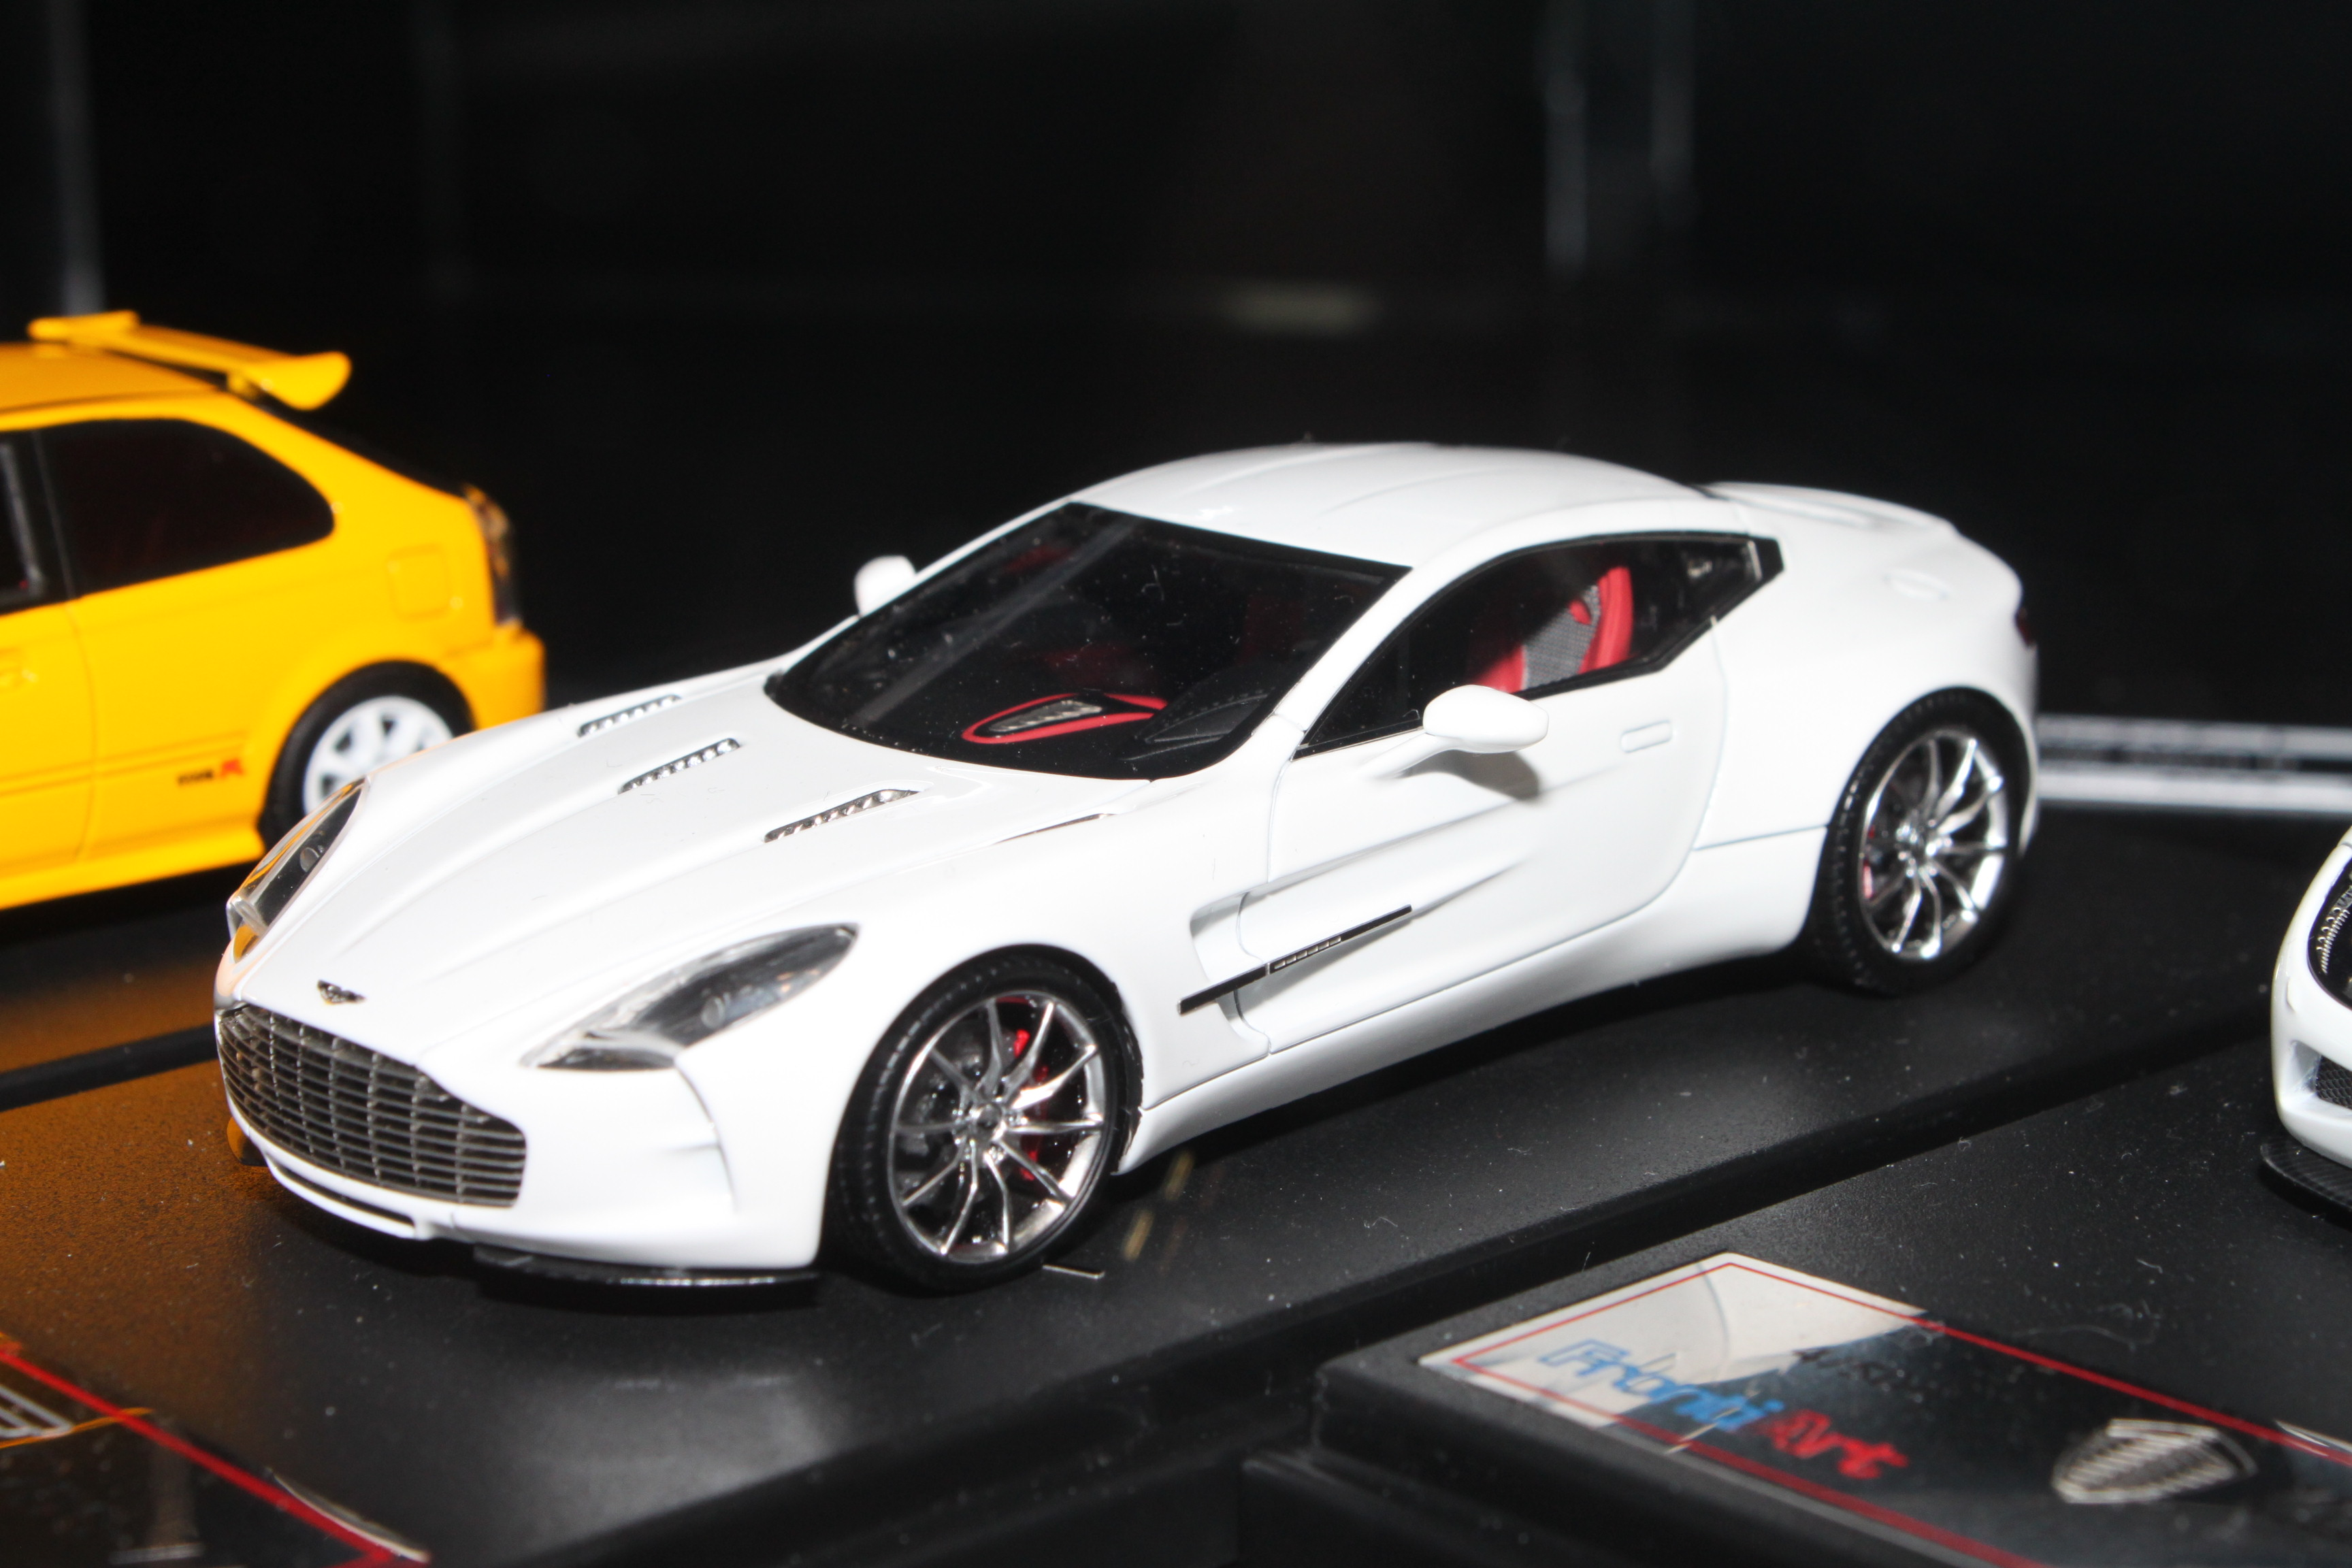 the new tecnomodel - aston martin one-77 with  - diecast